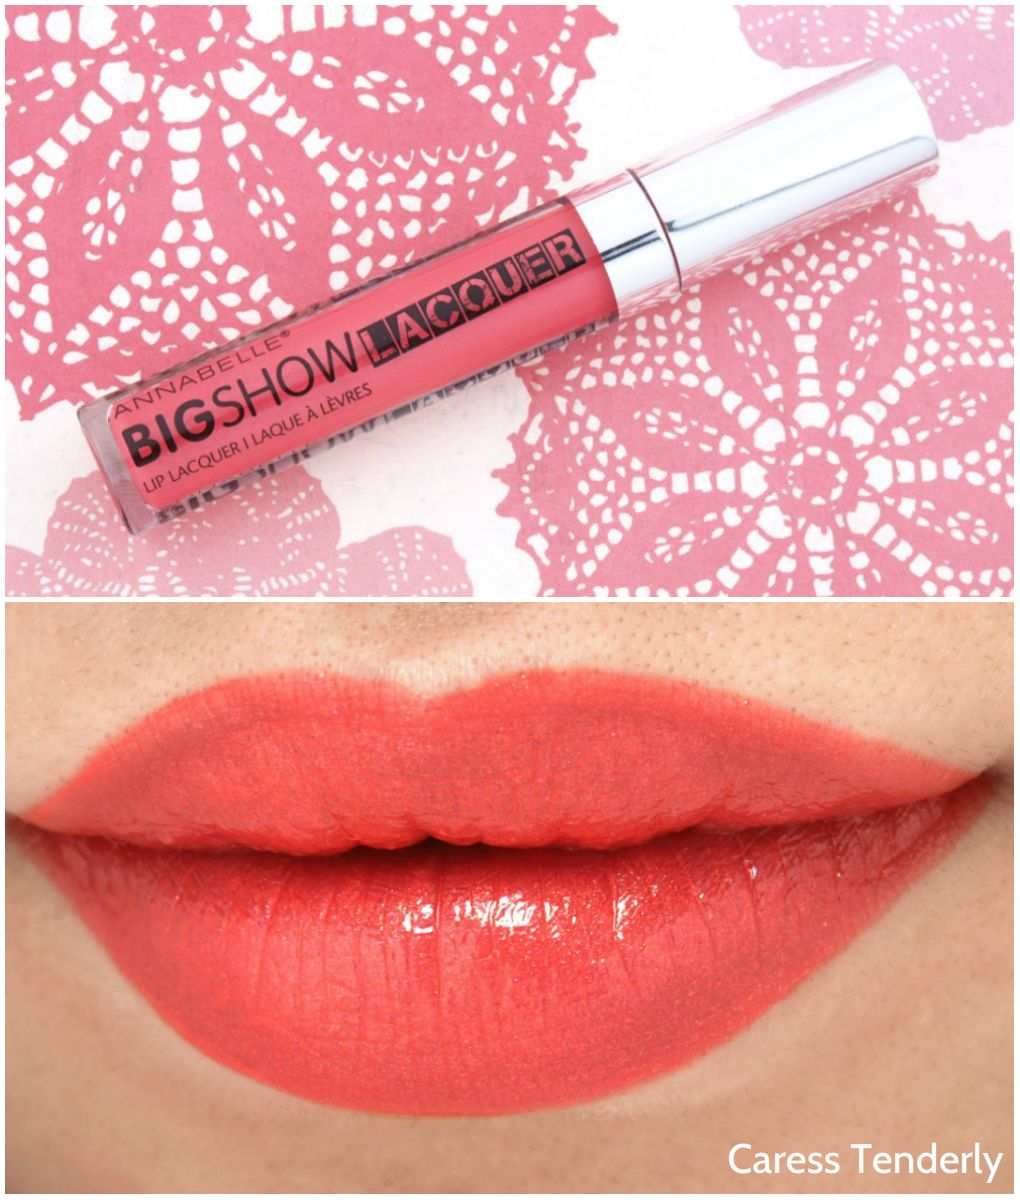 Annabelle BIGSHOW Lacquer Lip Lacquers Review and Swatches